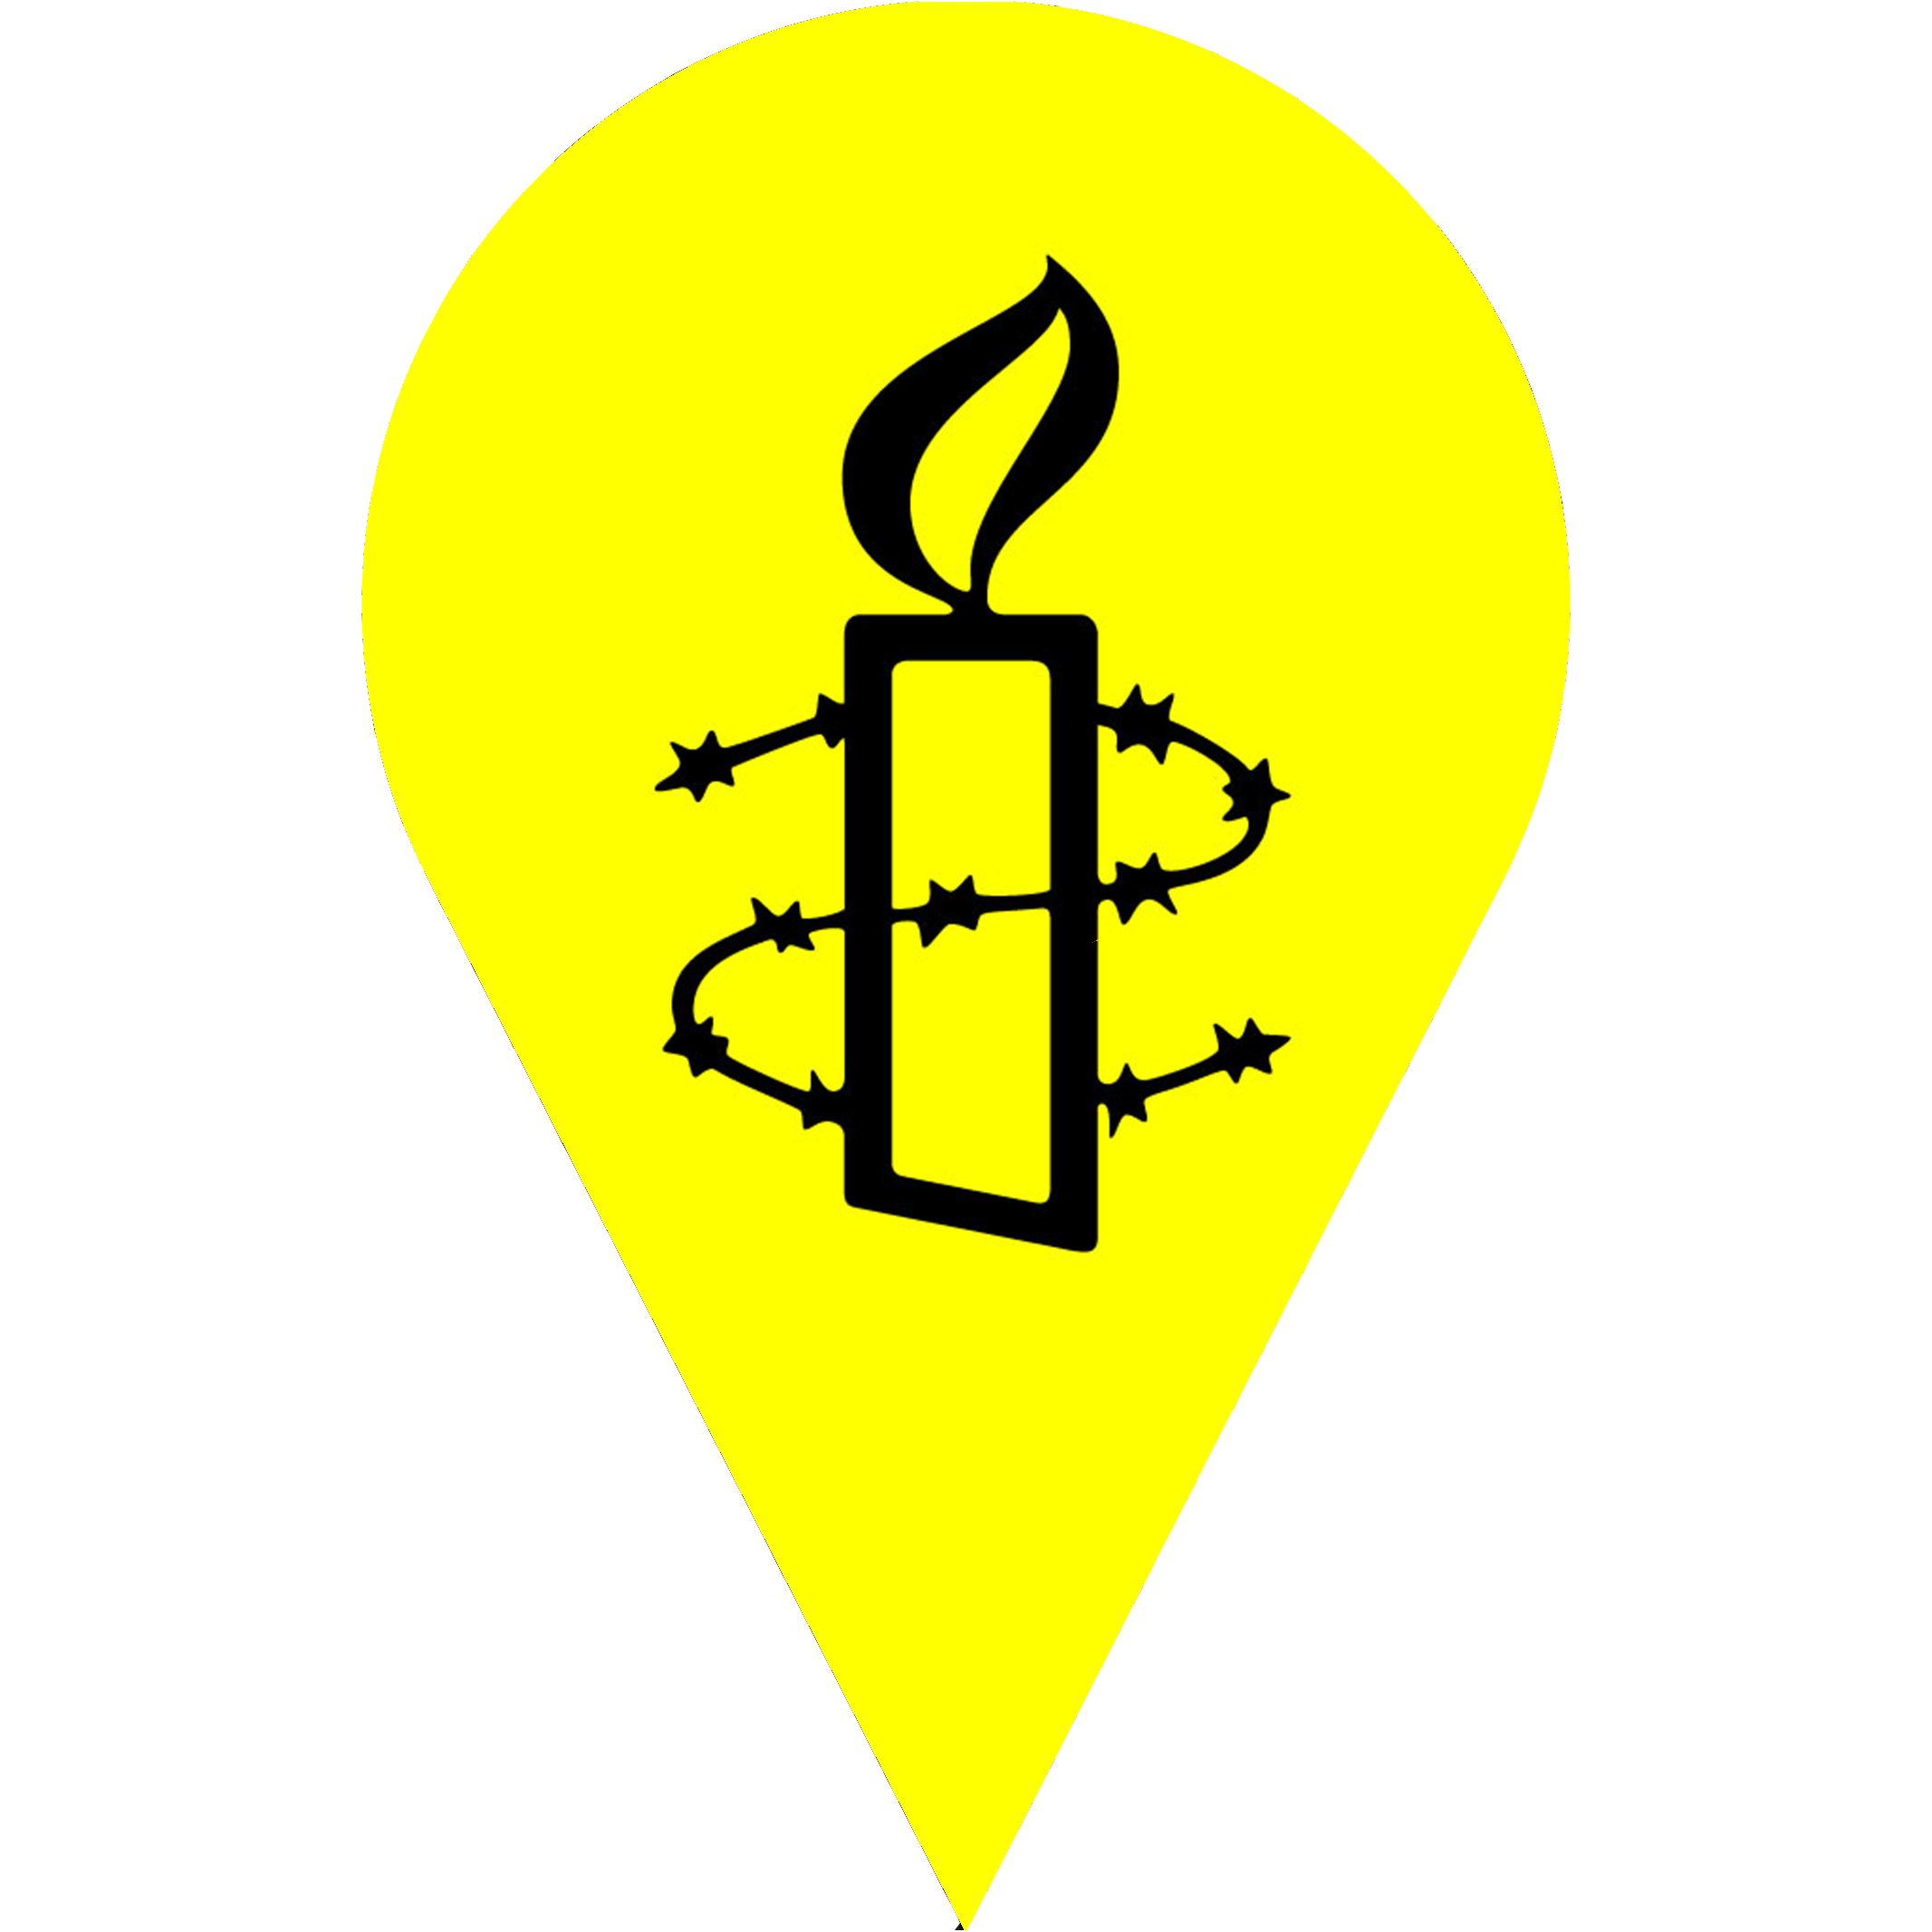 Transparent candles clear background. Amnesty icon candle youth